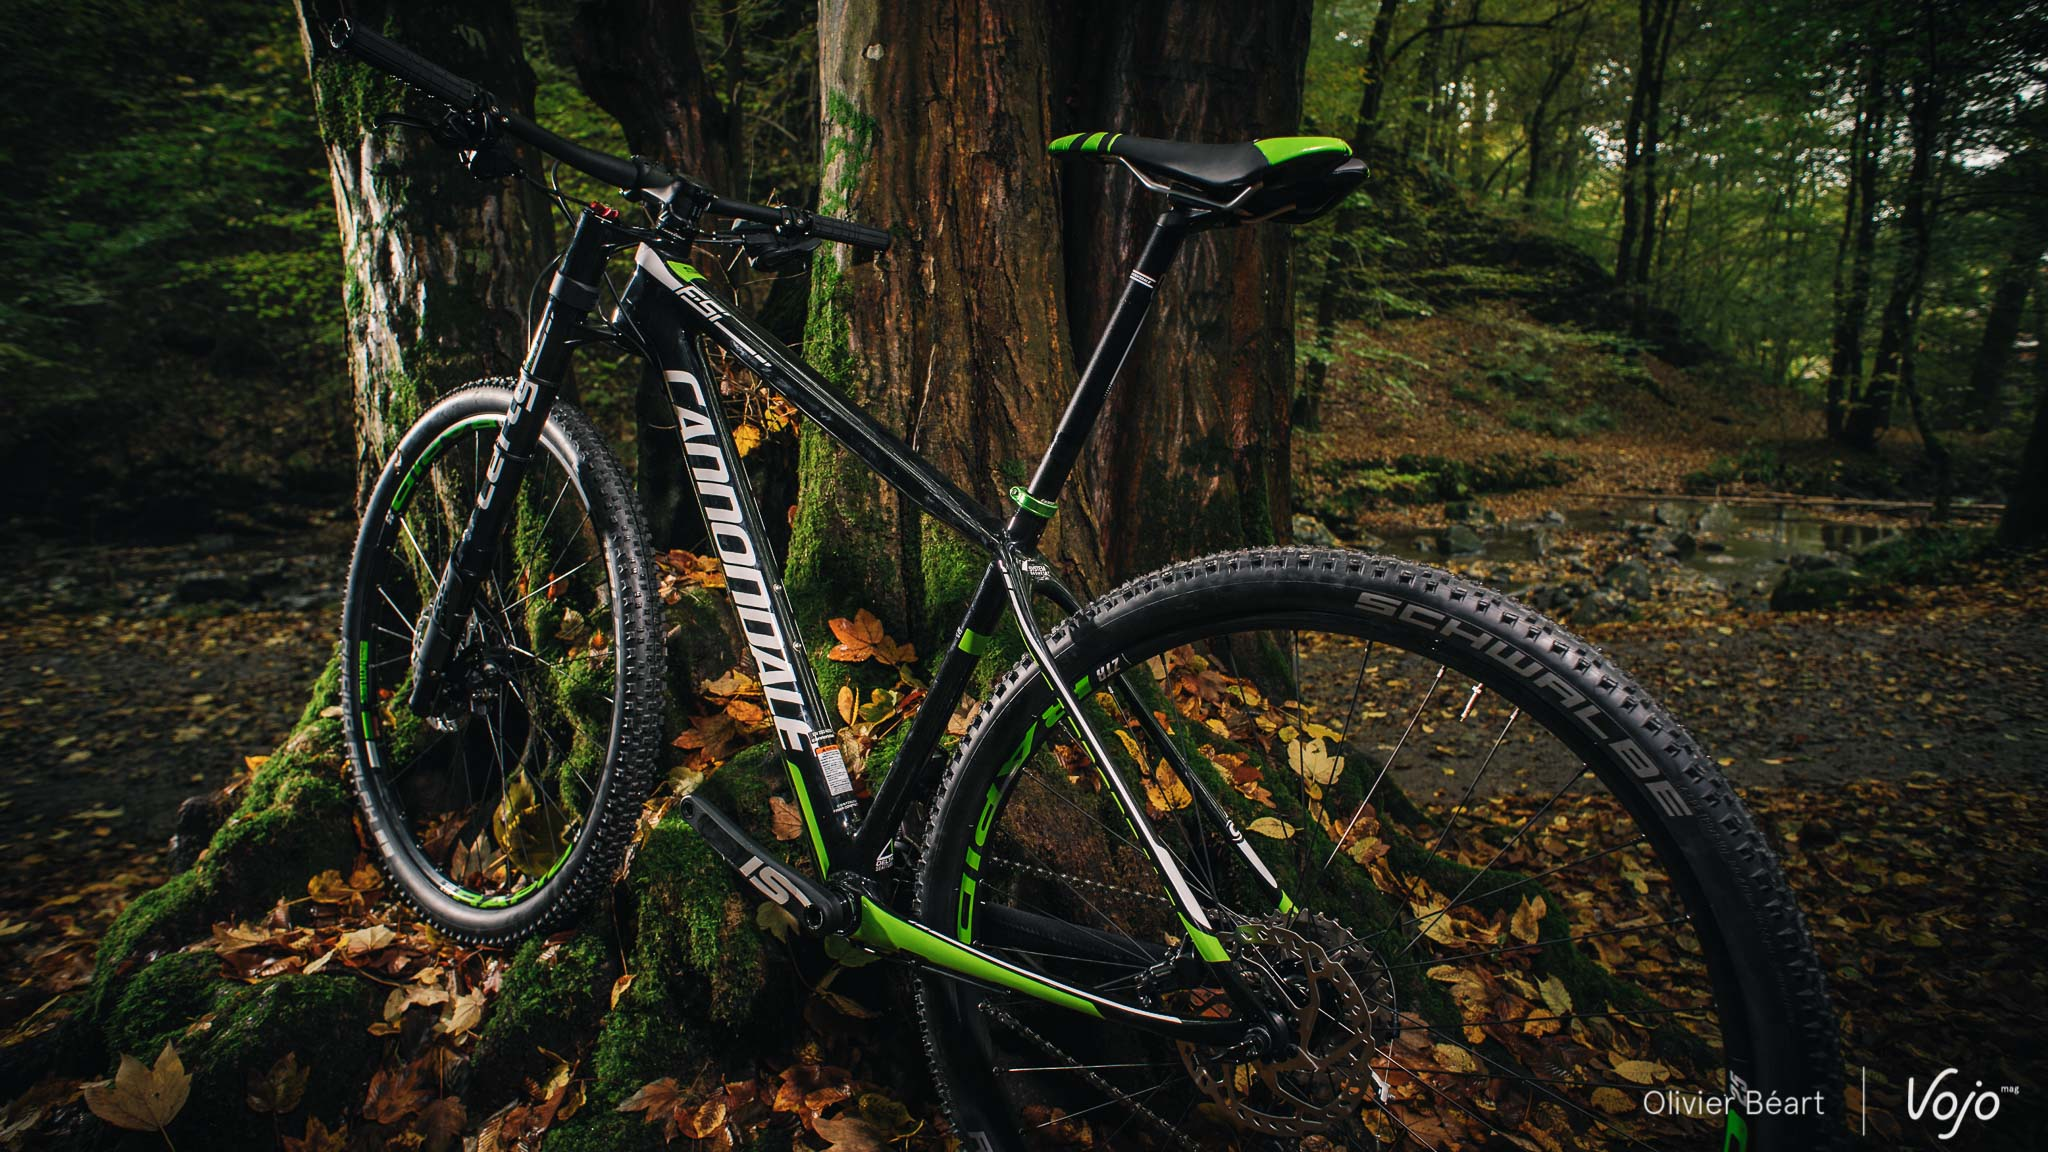 Cannondale_F-Si_Carbon_4_Test_Copyright_OBeart_VojoMag-1-3b